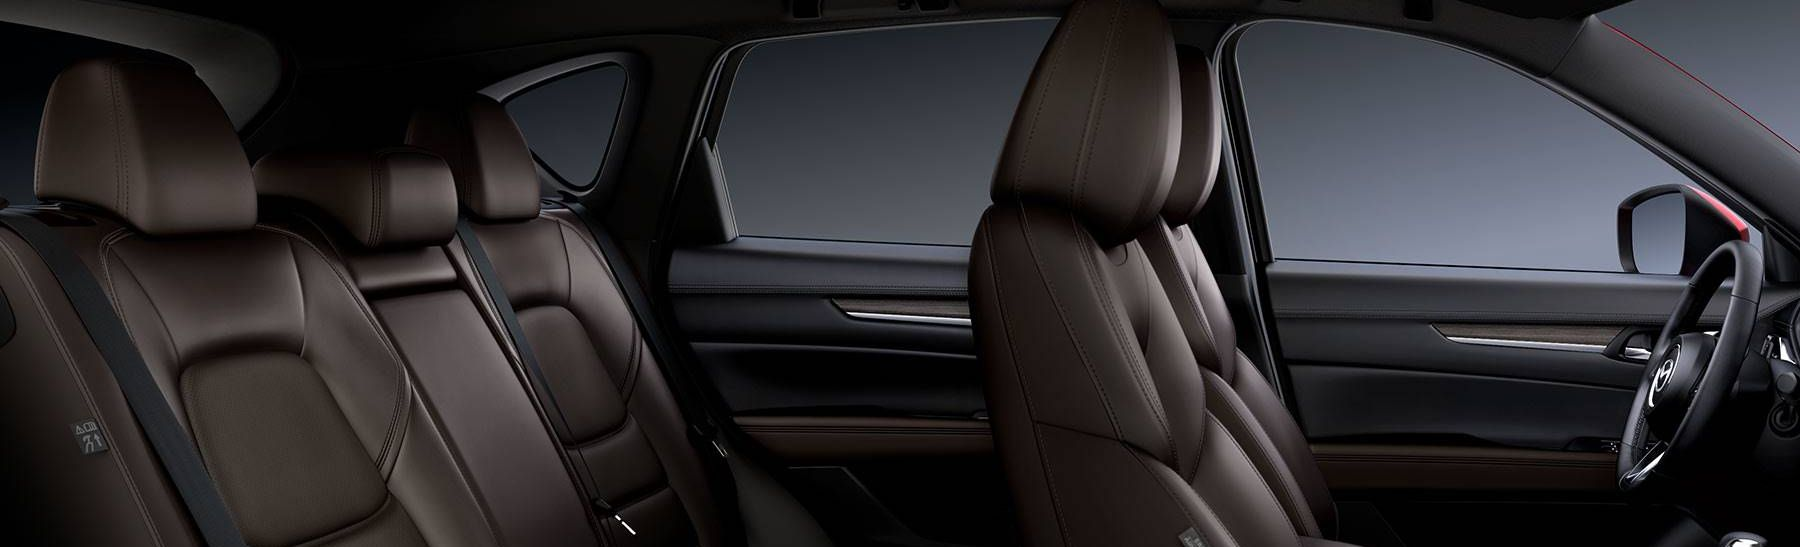 Safety Surrounds You in the 2019 Mazda CX-5